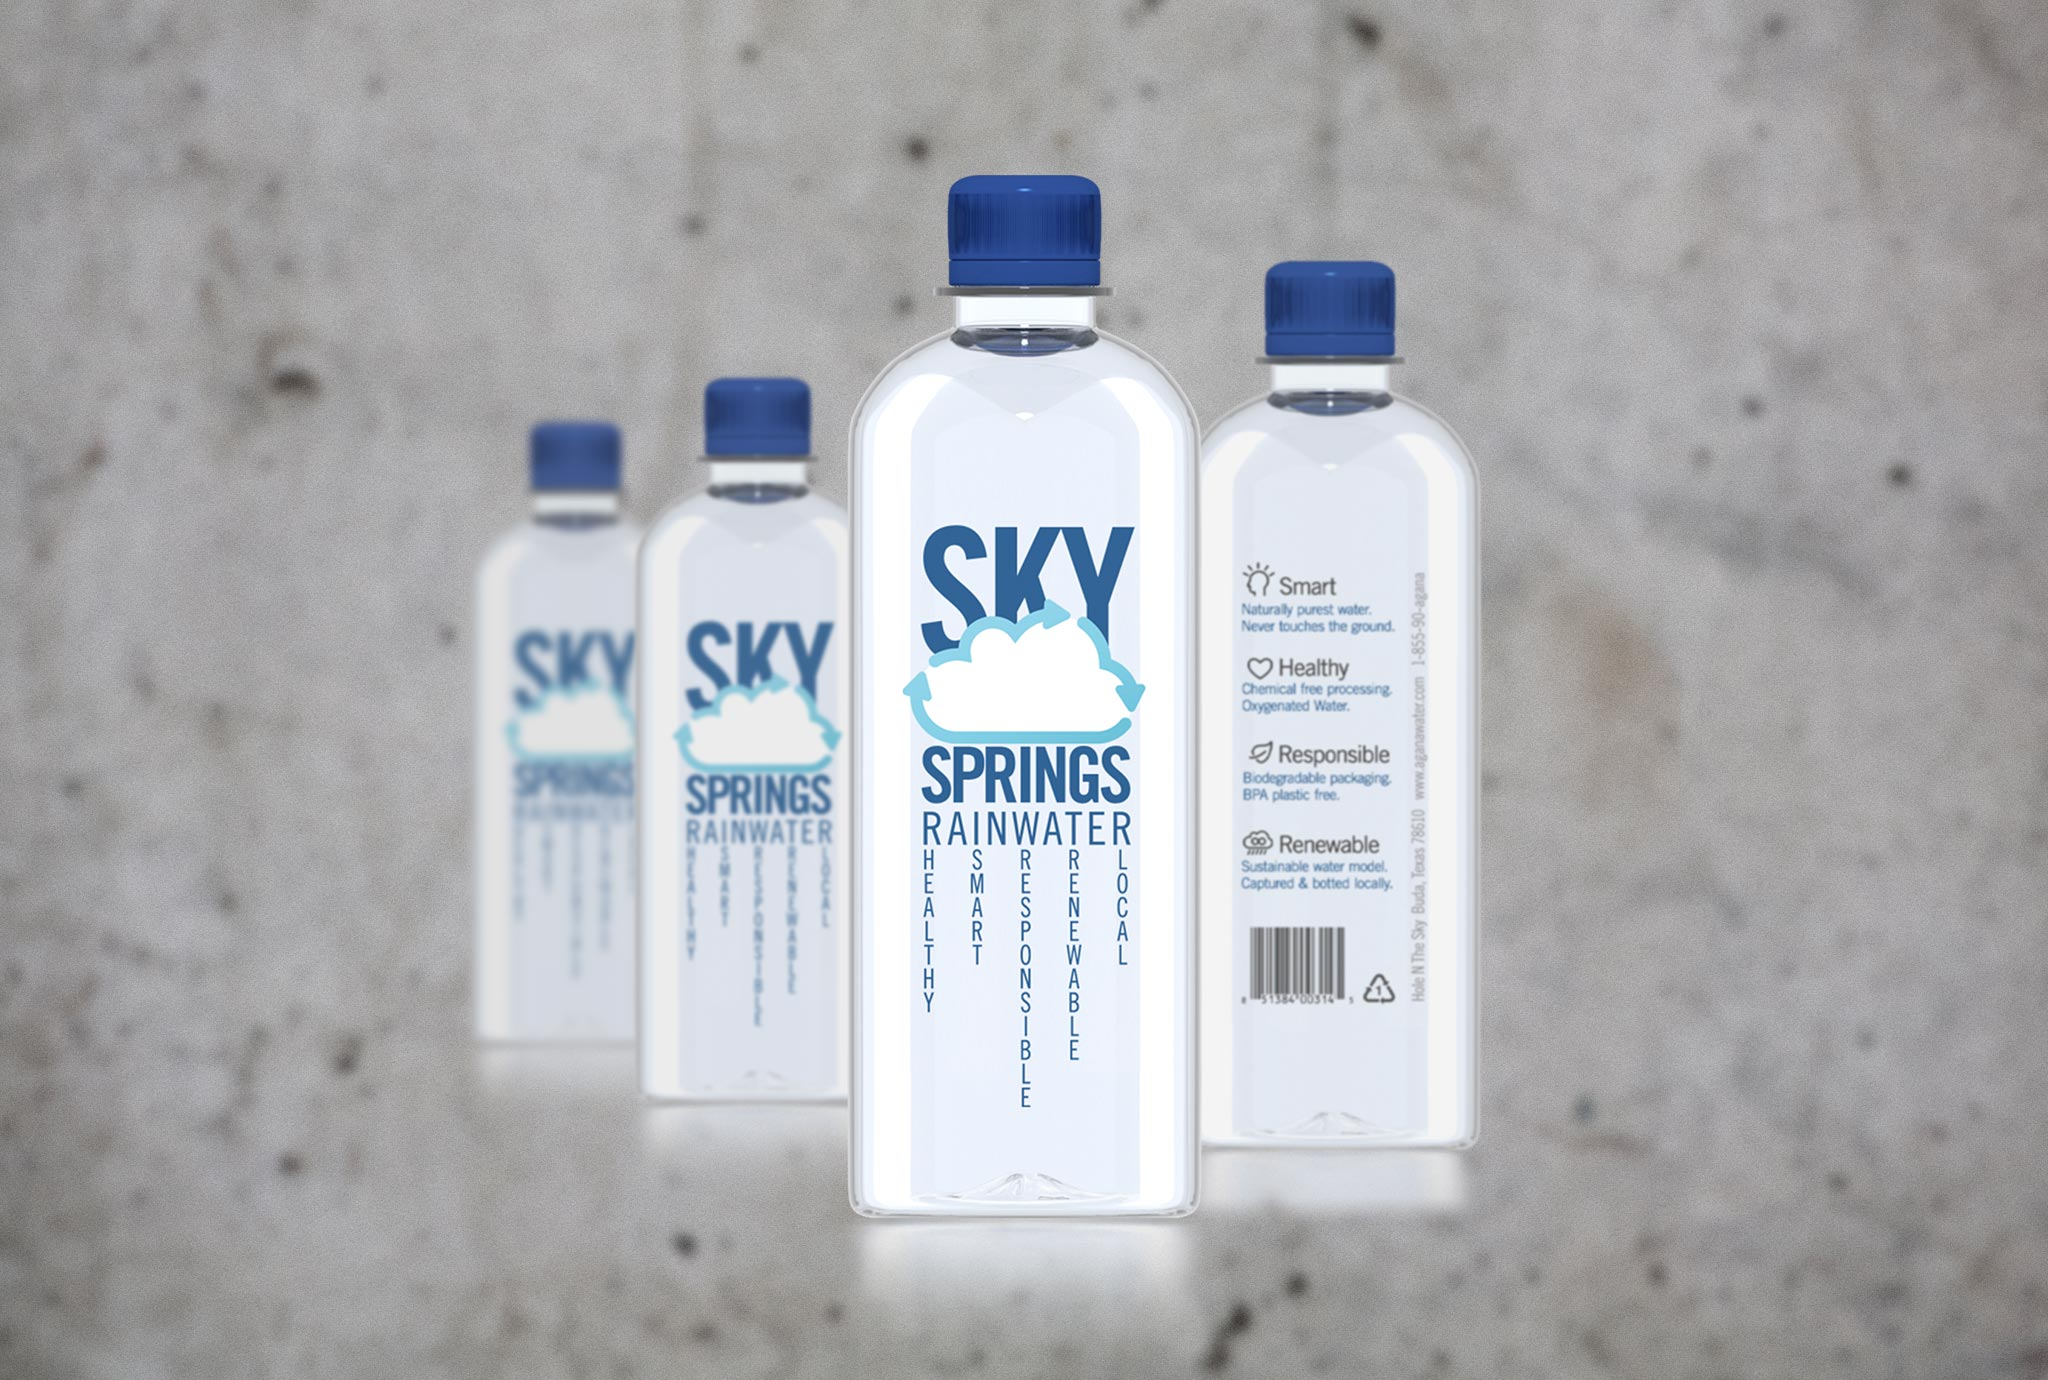 skyspring-product-packaging.jpg